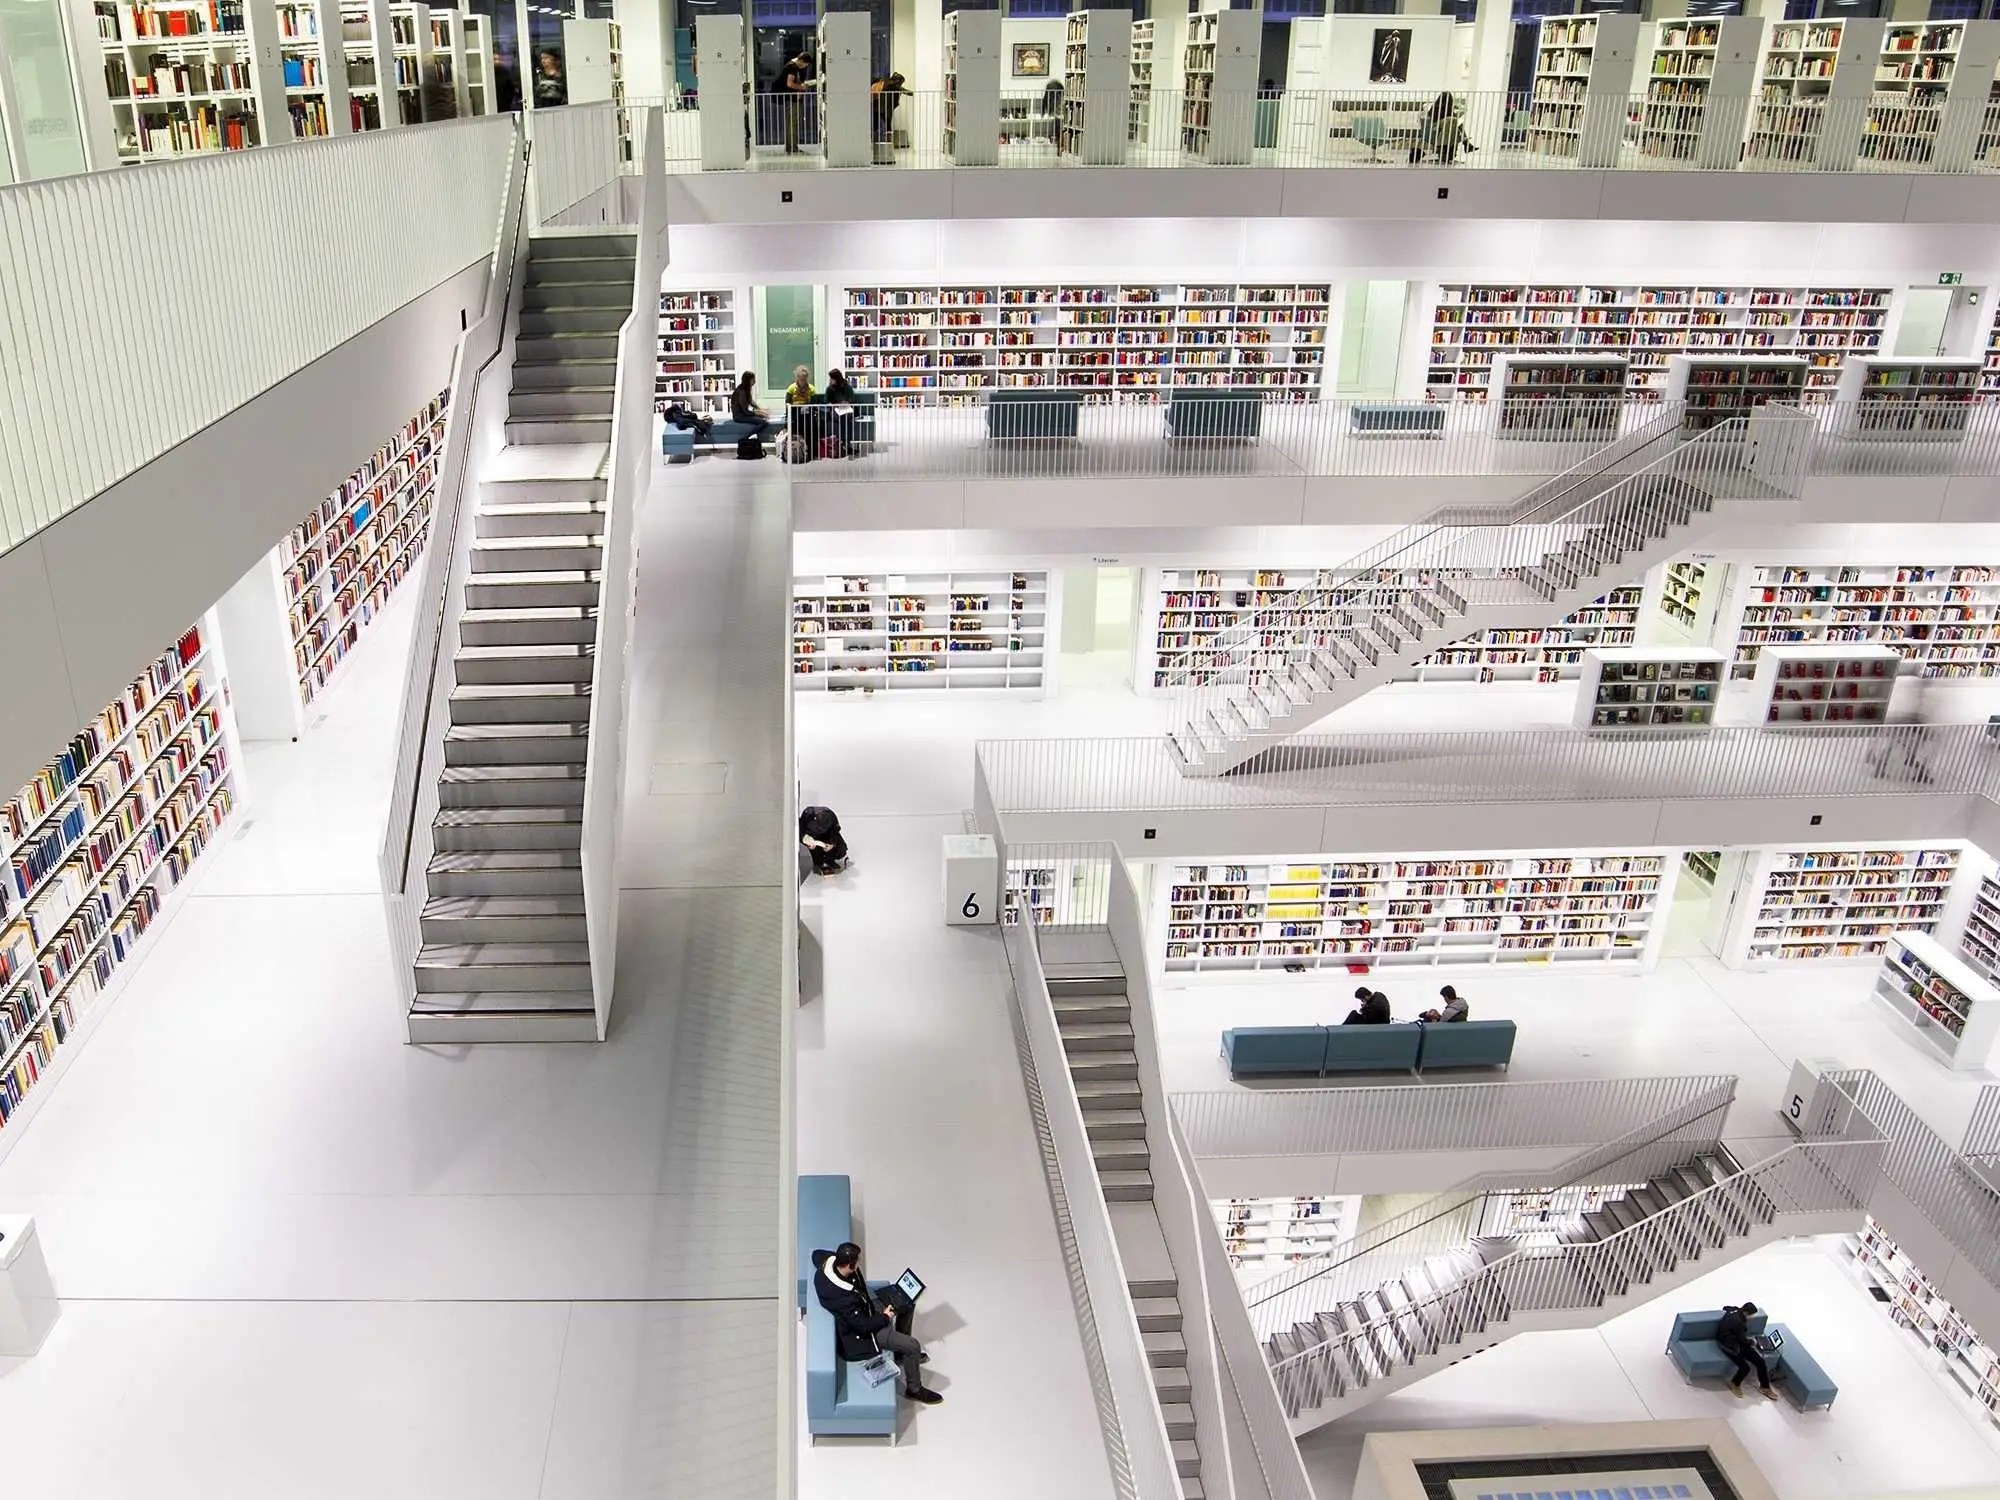 Best Libraries From Around The World - Stuttgart City Library